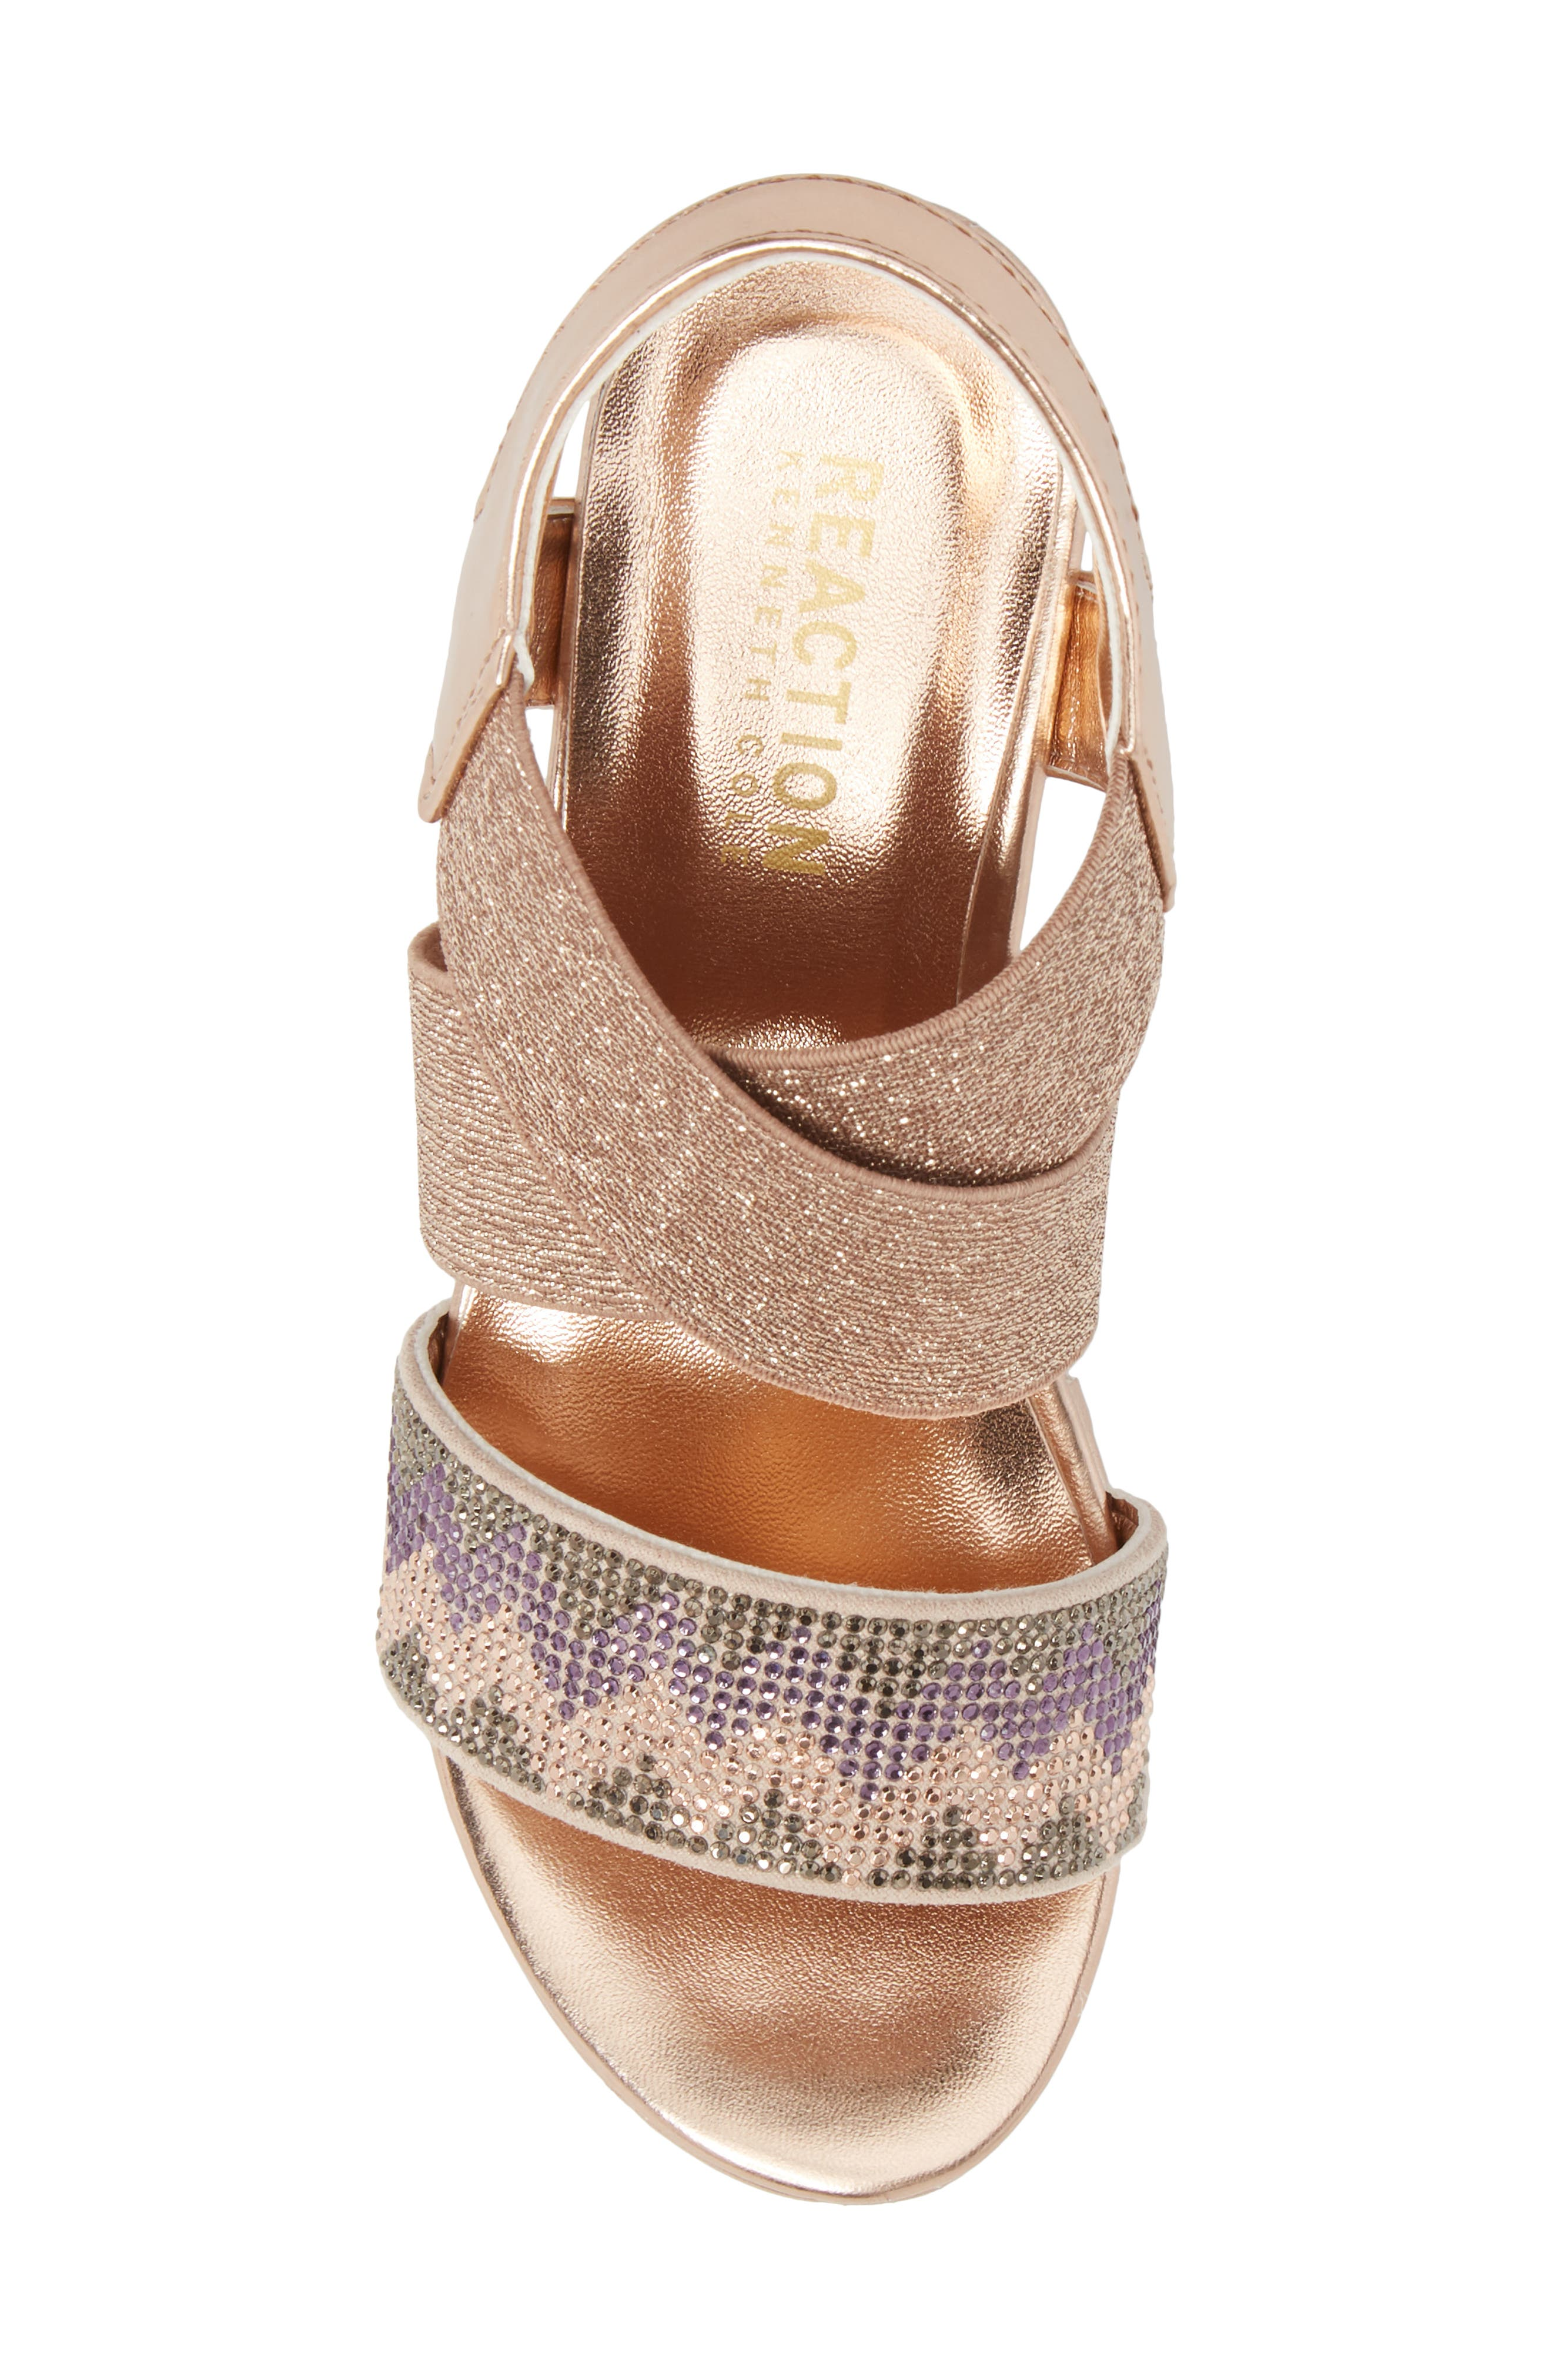 Reaction Kenneth Cole Reed Mamba Embellished Wedge Sandal,                             Alternate thumbnail 5, color,                             Rose Metallic